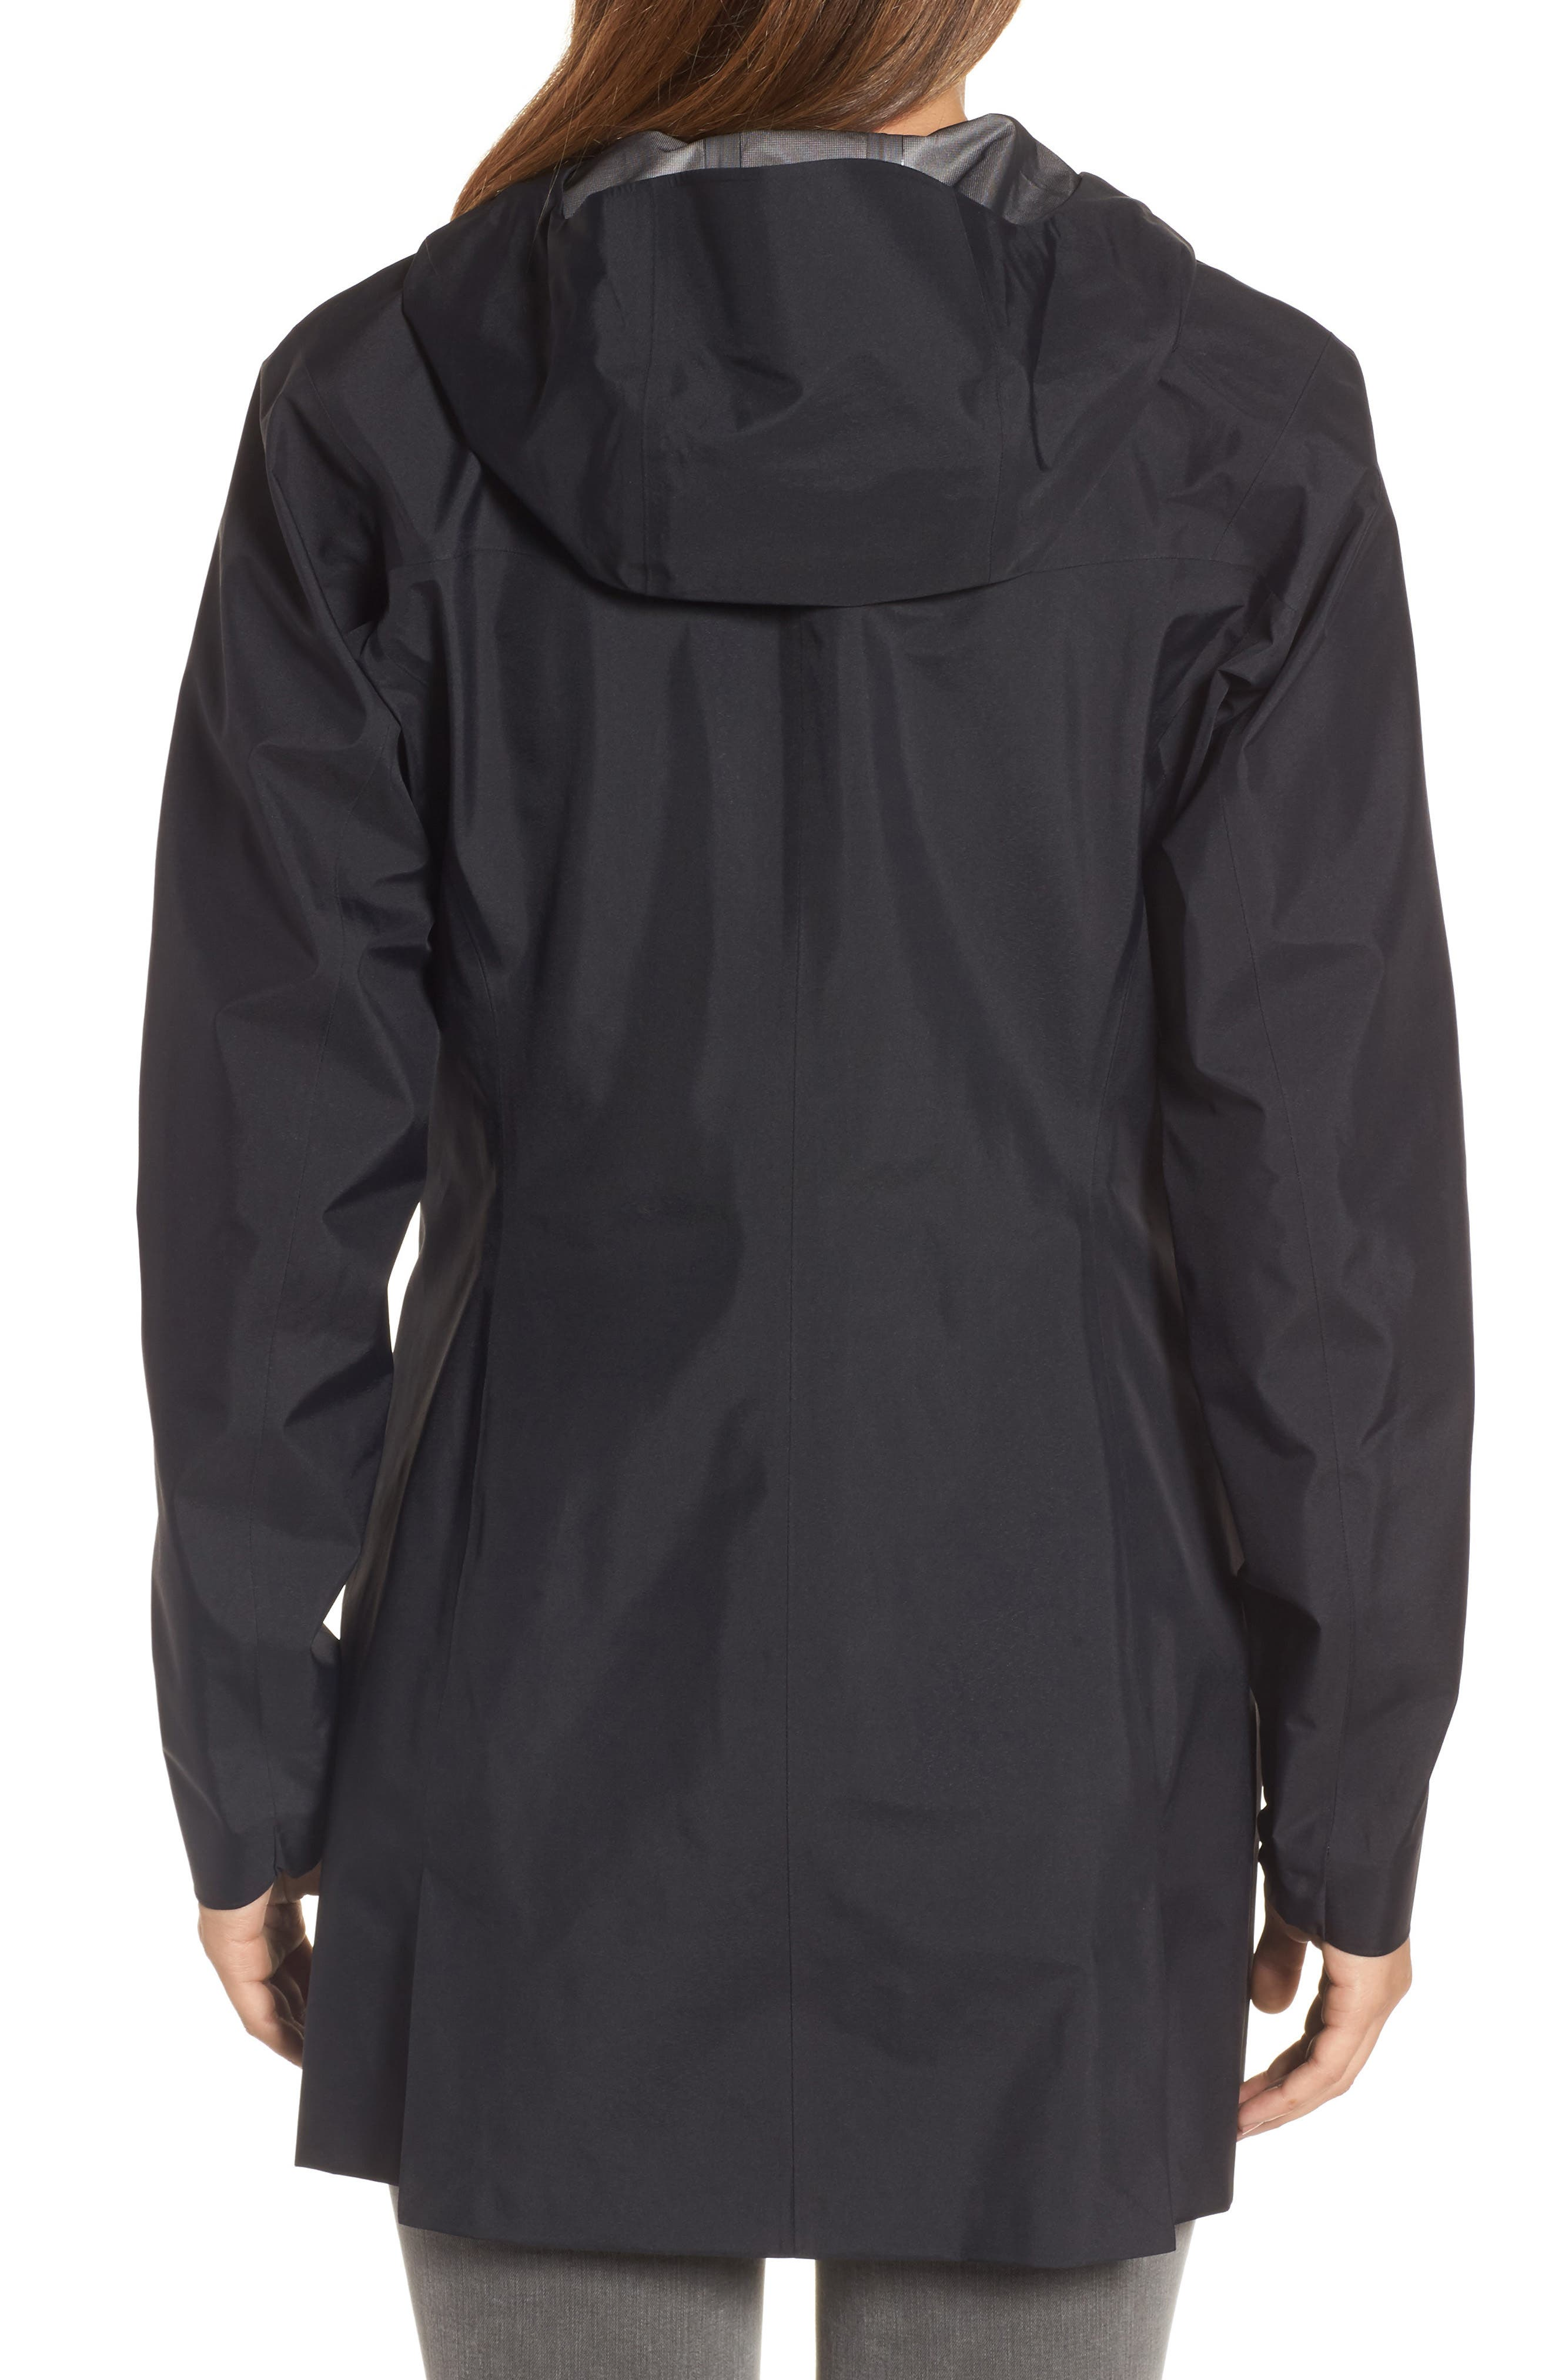 'Codetta' Waterproof Relaxed Fit Gore-Tex<sup>®</sup> 3L Rain Jacket,                             Alternate thumbnail 2, color,                             001